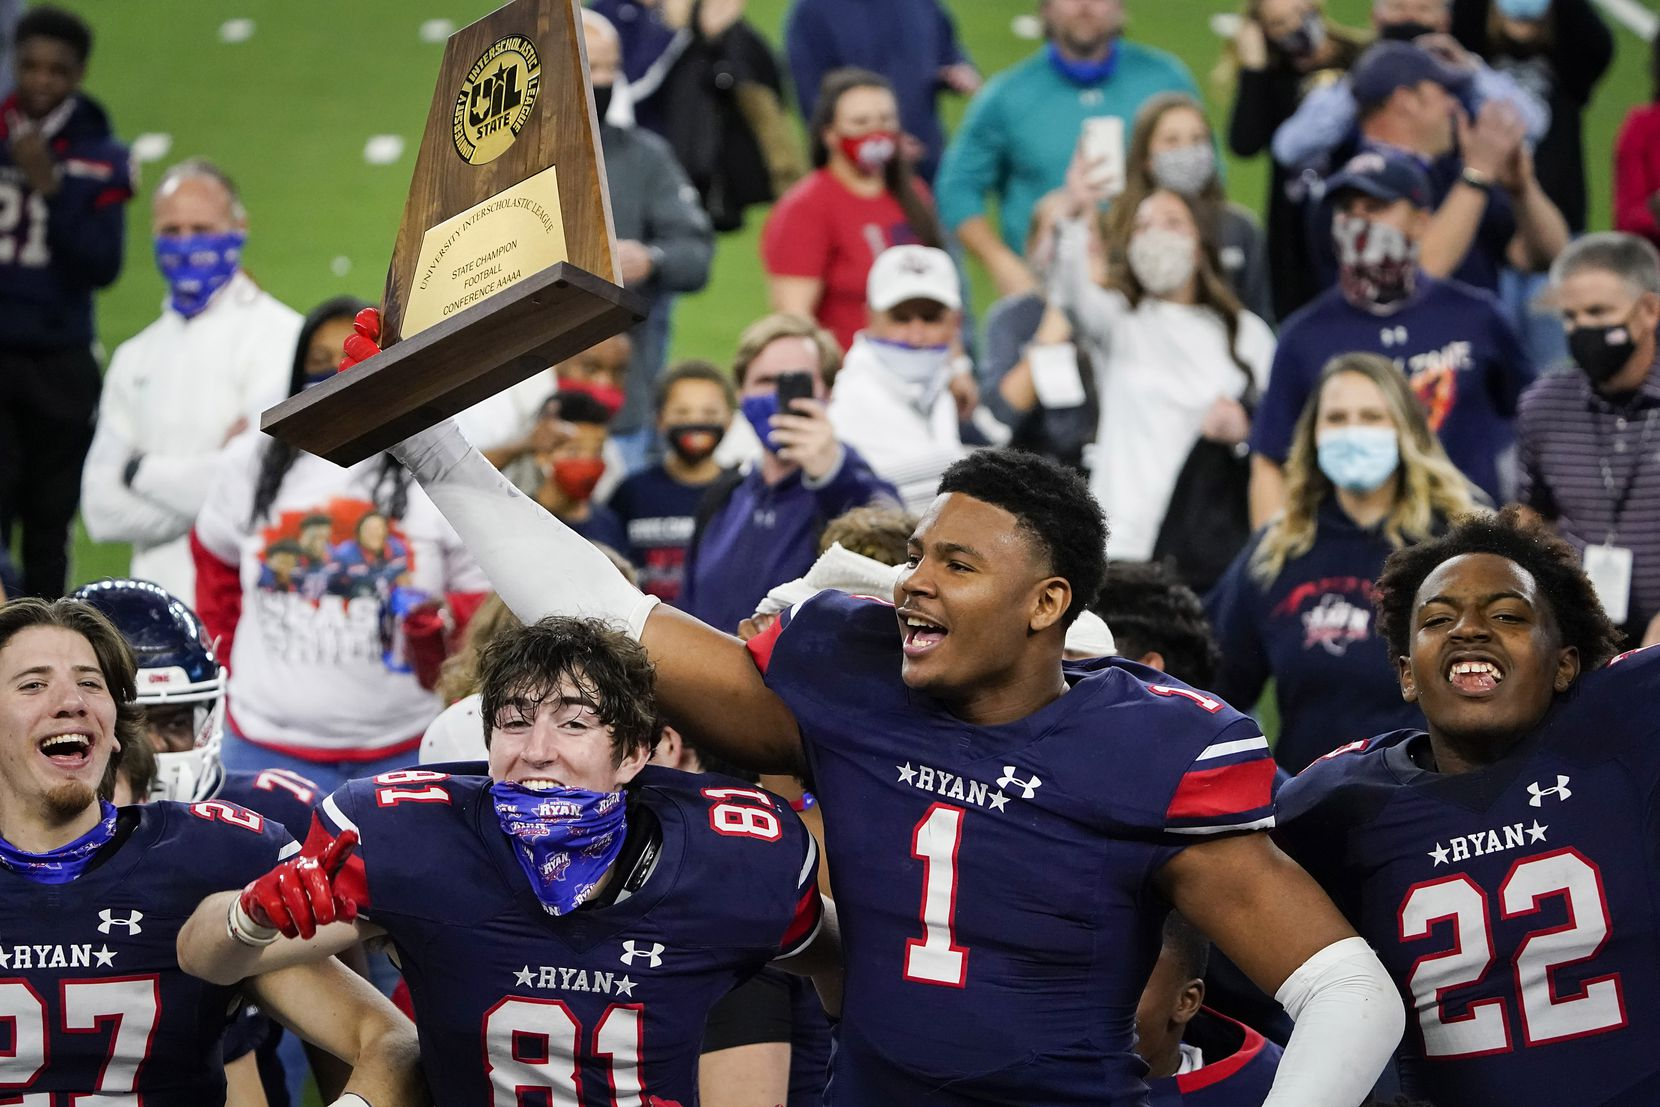 Denton Ryan wide receiver Ja'Tavion Sanders (1) lifts the championship trophy as the Raiders celebrate a 59-14 victory over Cedar Park to win the Class 5A Division I state football championship game at AT&T Stadium on Friday, Jan. 15, 2021, in Arlington, Texas. (Smiley N. Pool/The Dallas Morning News)